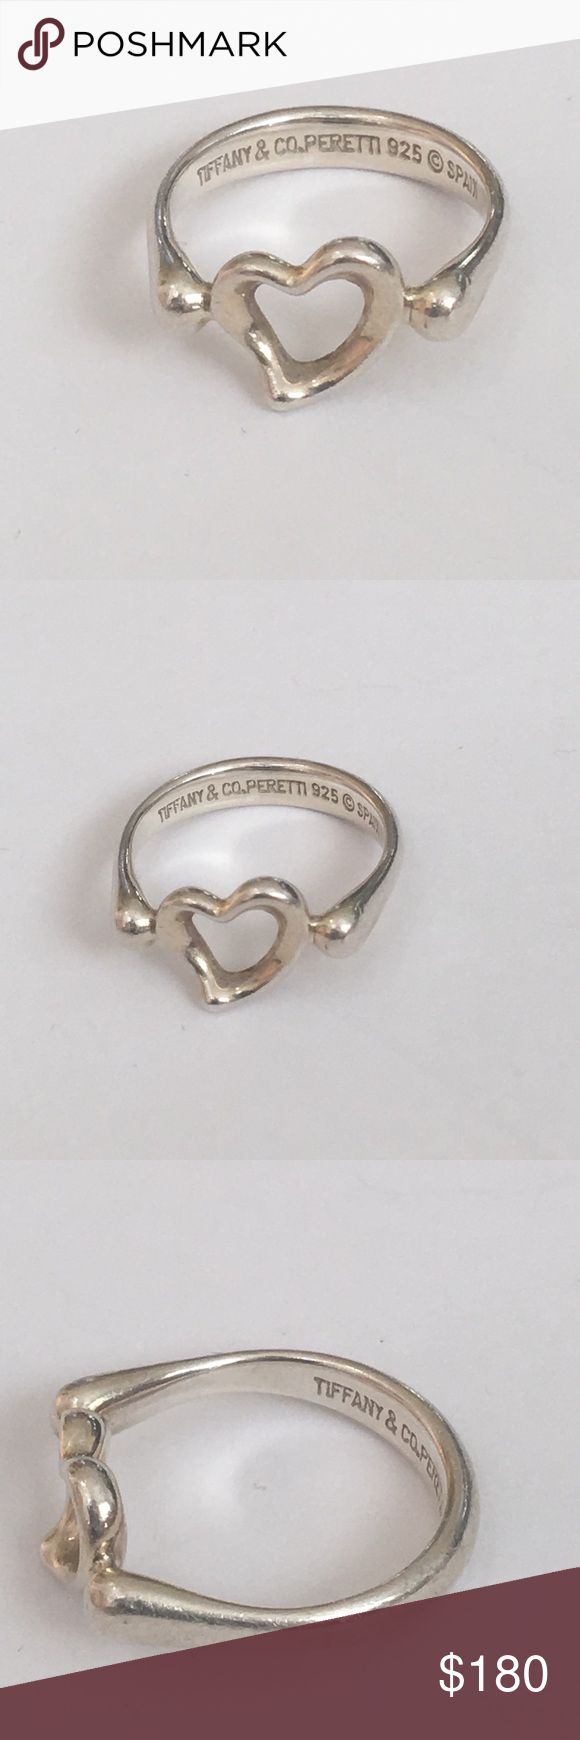 Tiffany Elsa Peretti Heart Ring Mini - Size 4 1/2 This is nothing take Tiffany ring, designed by Elsa Perretti. It is an open heart sterling silver ring. It's a size 4 1/2 and can be size by a jeweler, but it will cut into the Hallmark if you try to make it bigger. The ring is hallmark Tiffany and Company Elsa Perretti & Spain. It is currently available on Tiffany's website for 225. Tiffany & Co. Jewelry Rings